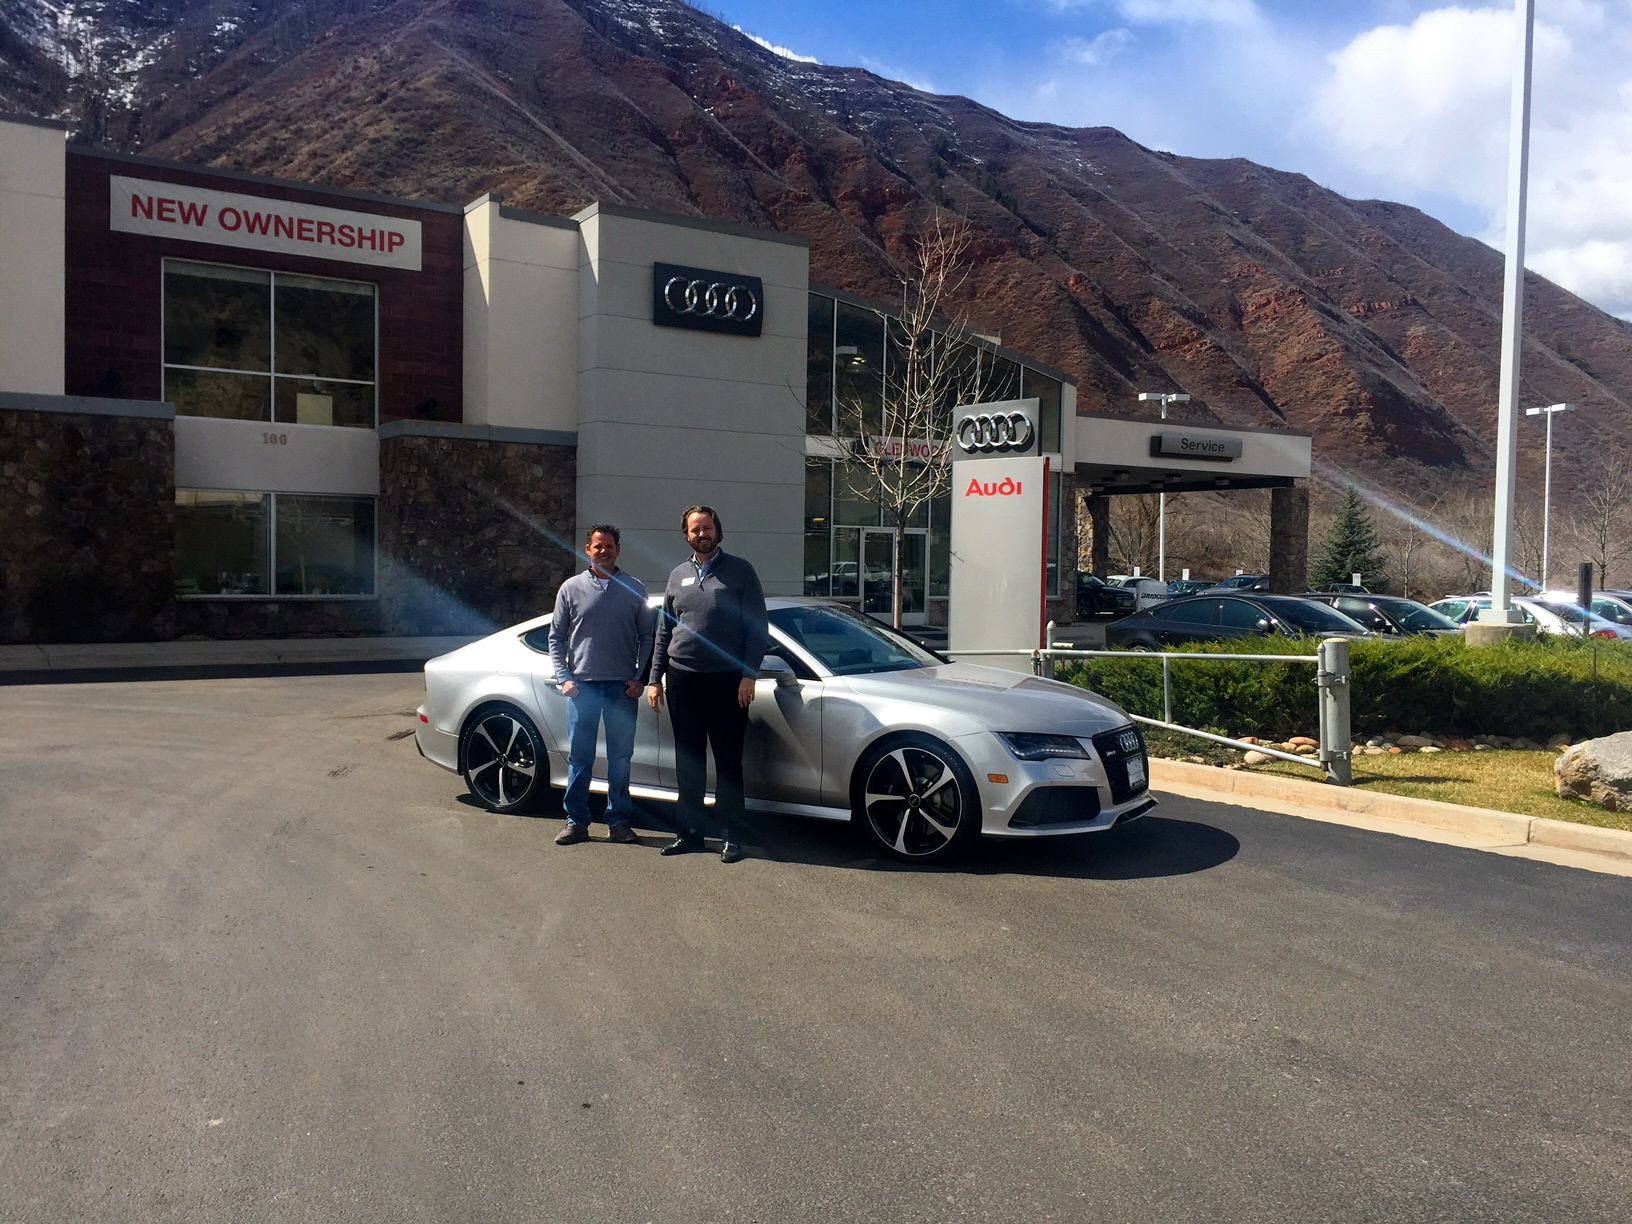 Glenwood AudiAudi Glenwood Springs Glenwood Springs CO Business - Glenwood audi